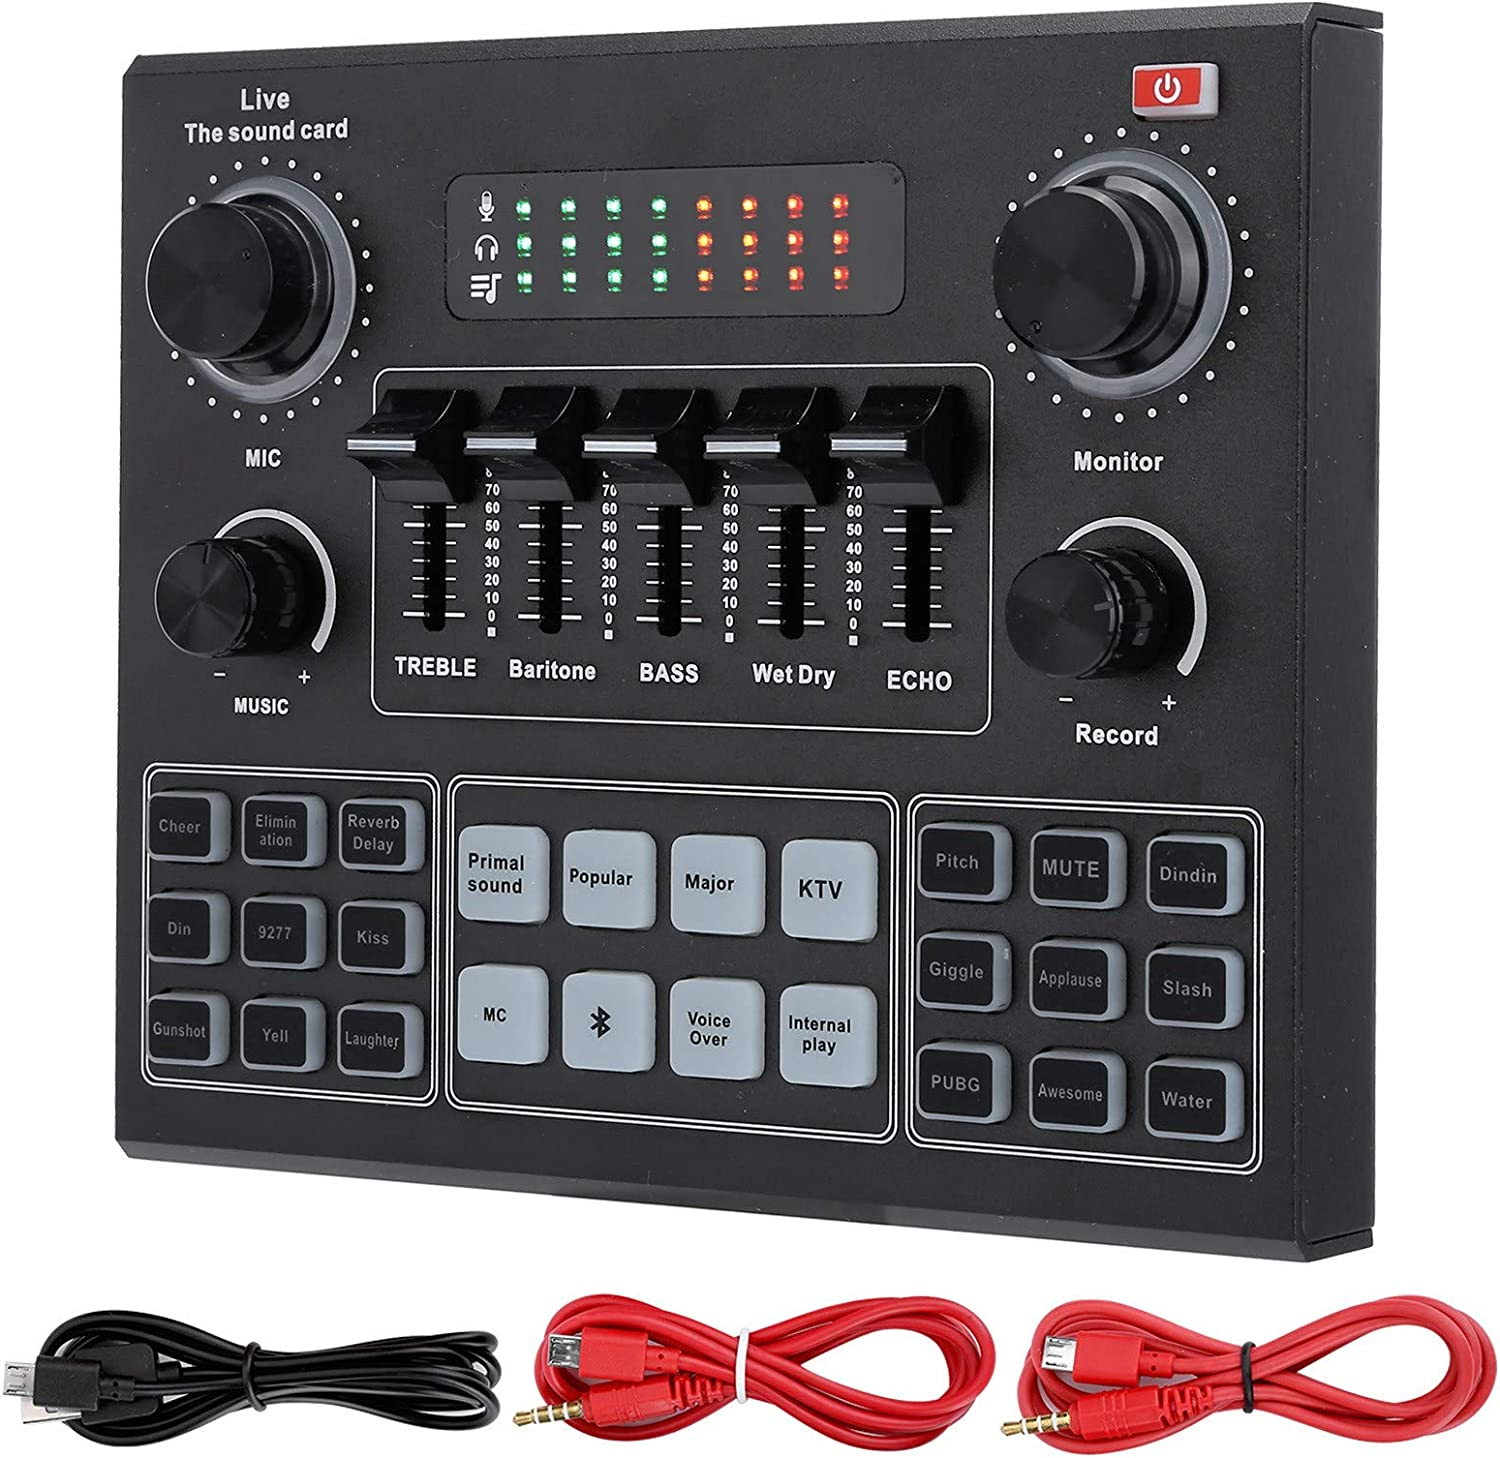 V9 Bluetooth Sound Card Stereo Audio Limited Special Price Mixer and Effects El Paso Mall Voic with